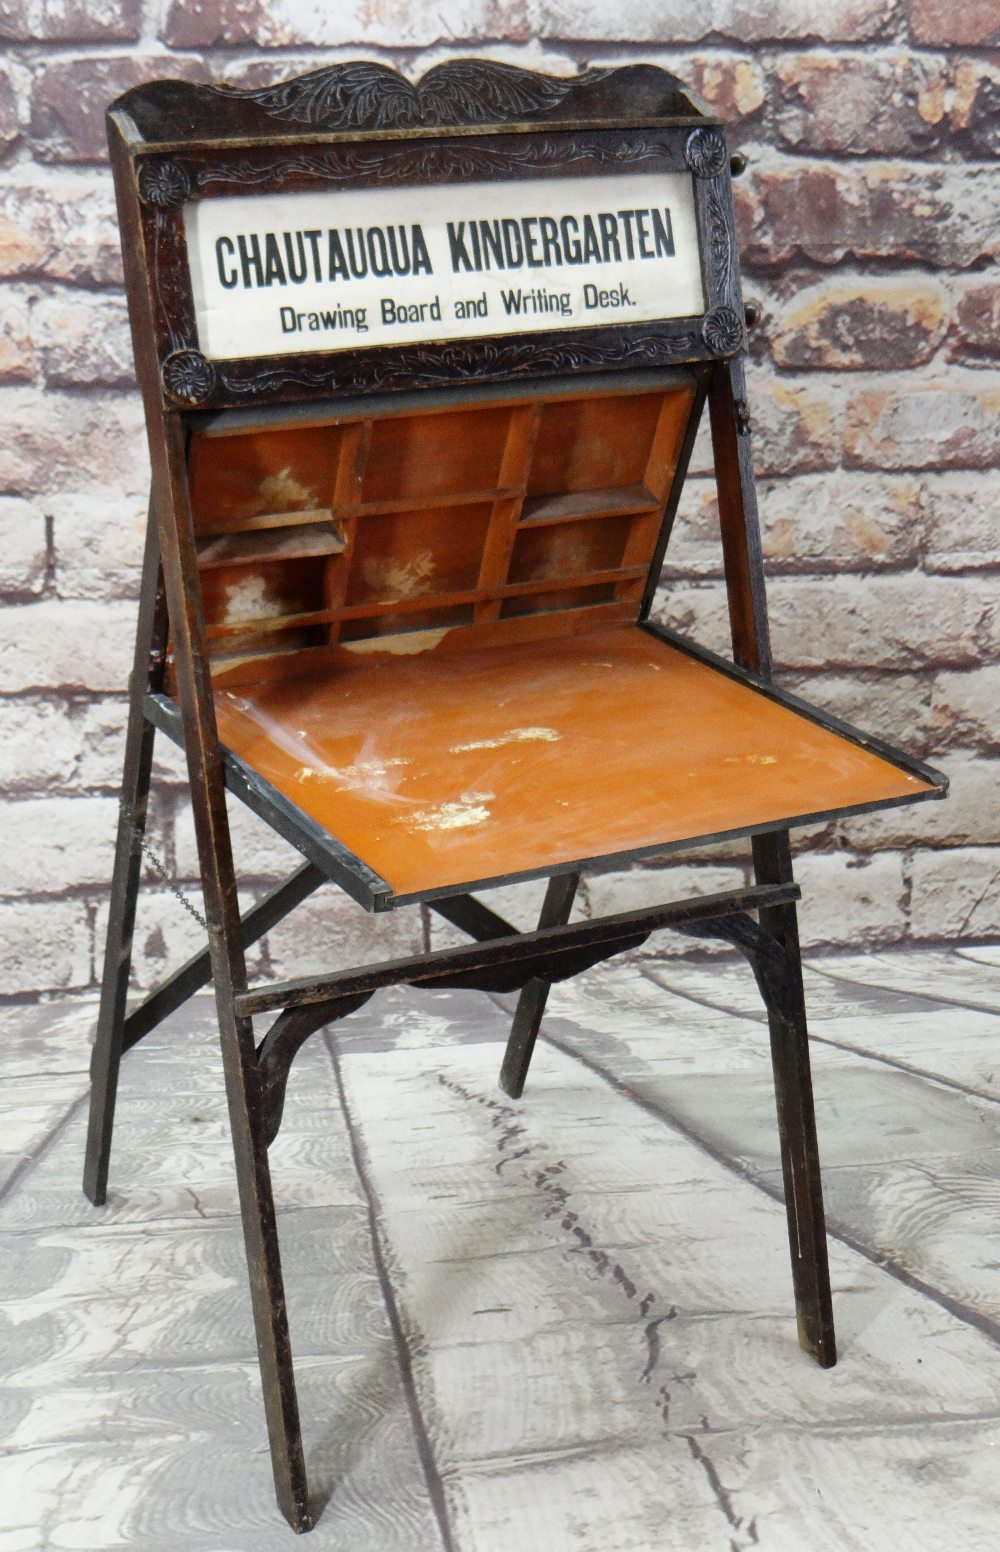 AMERICAN CHAUTAUQUA KINDERGARTEN DRAWING BOARD & WRITING DESK, early 20th century, with revolving - Image 2 of 6